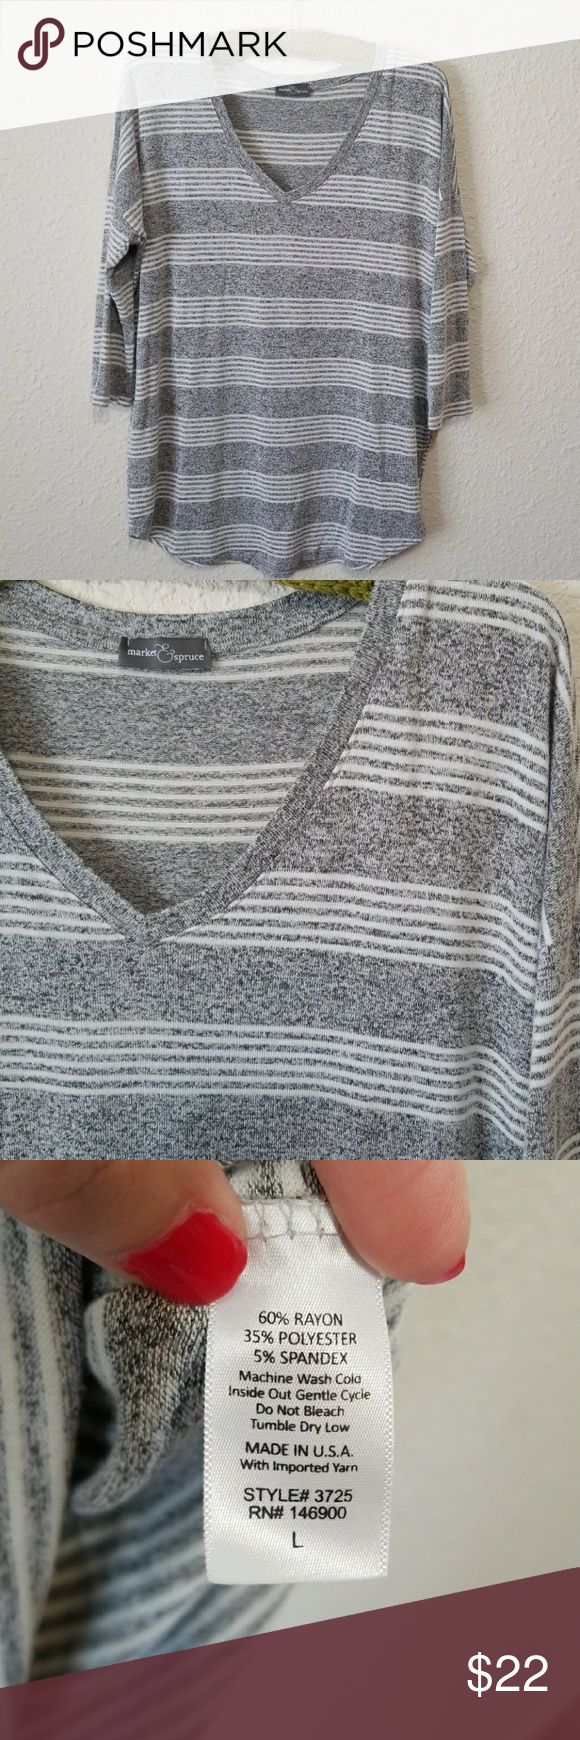 """Stitch Fix Dolman Sleeve Knit Top This top is so soft and comfortable and in excellent used condition. Heathered gray with white stripes, it will go with so much! Skinny jeans and black moto leggings are perfect with it, it is long enough to cover the backside. Measurements approximate. Bust: 24.5"""" Length 27 3/4"""" & slightly shorter in front  Shoulder: free size Market & Spruce Tops"""